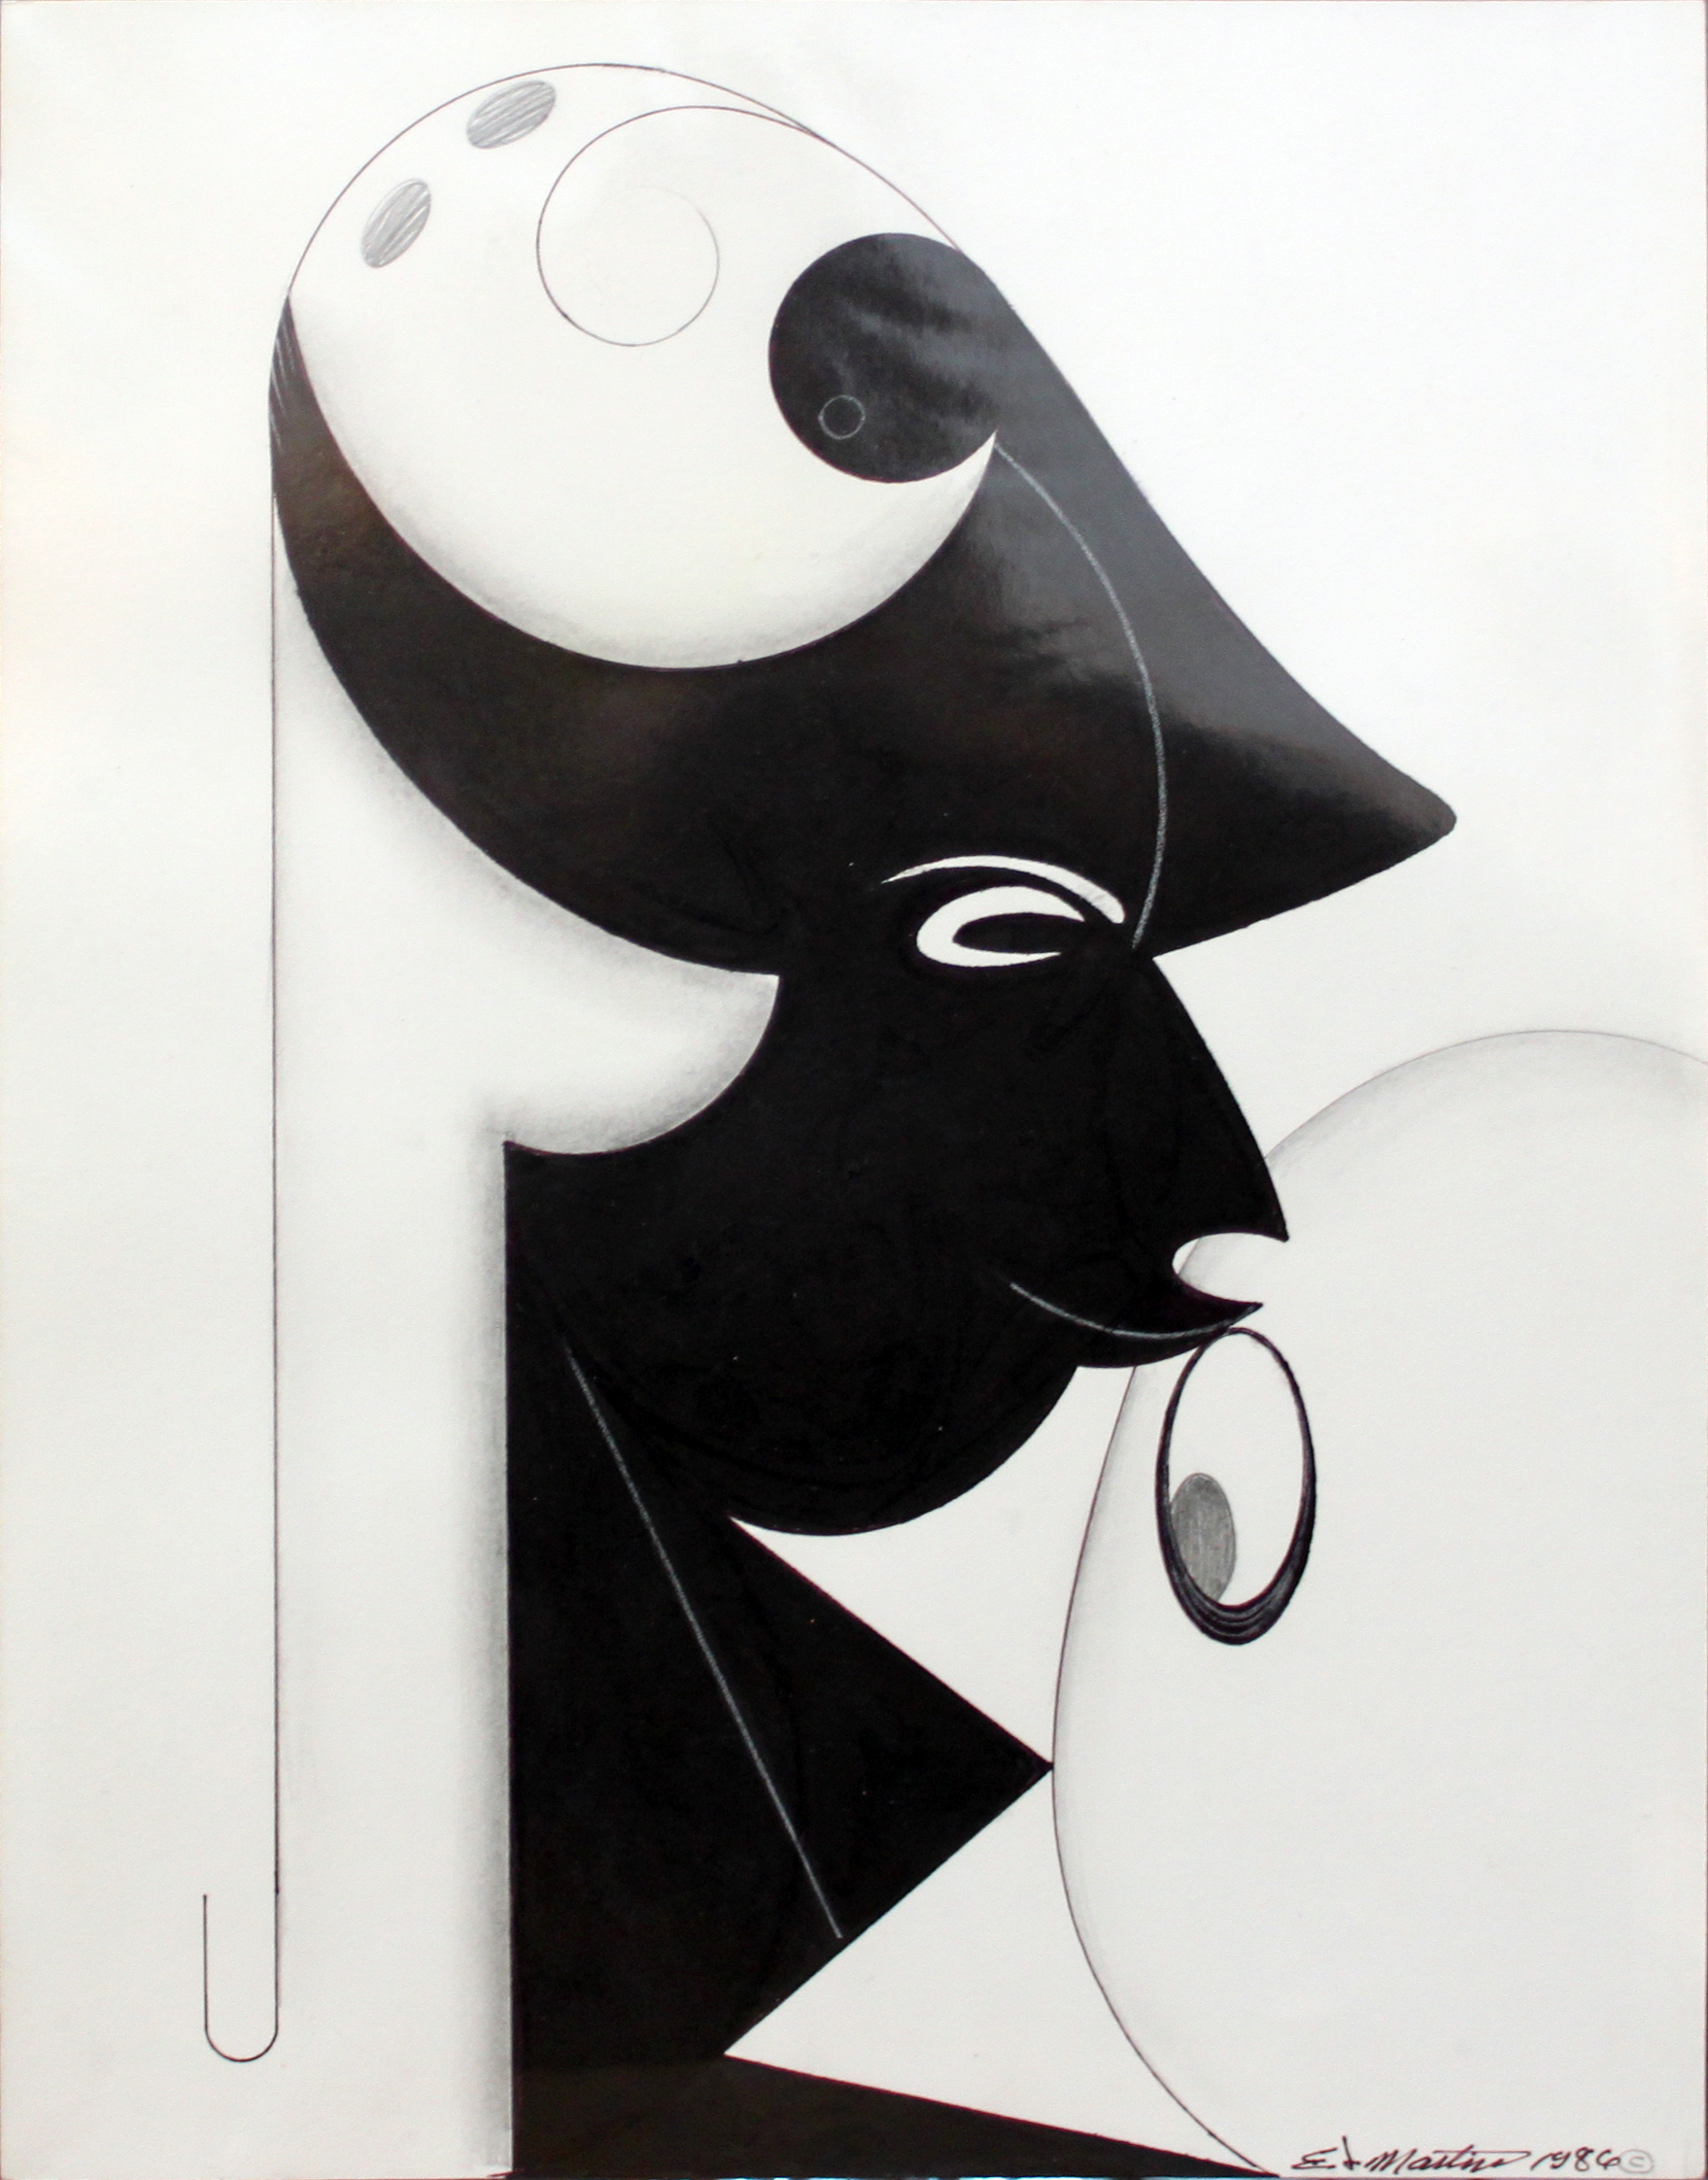 Untitled , 1986 pen, ink and graphite 13 3/4 x 10 3/4 inches; 34.9 x 27.3 centimeters